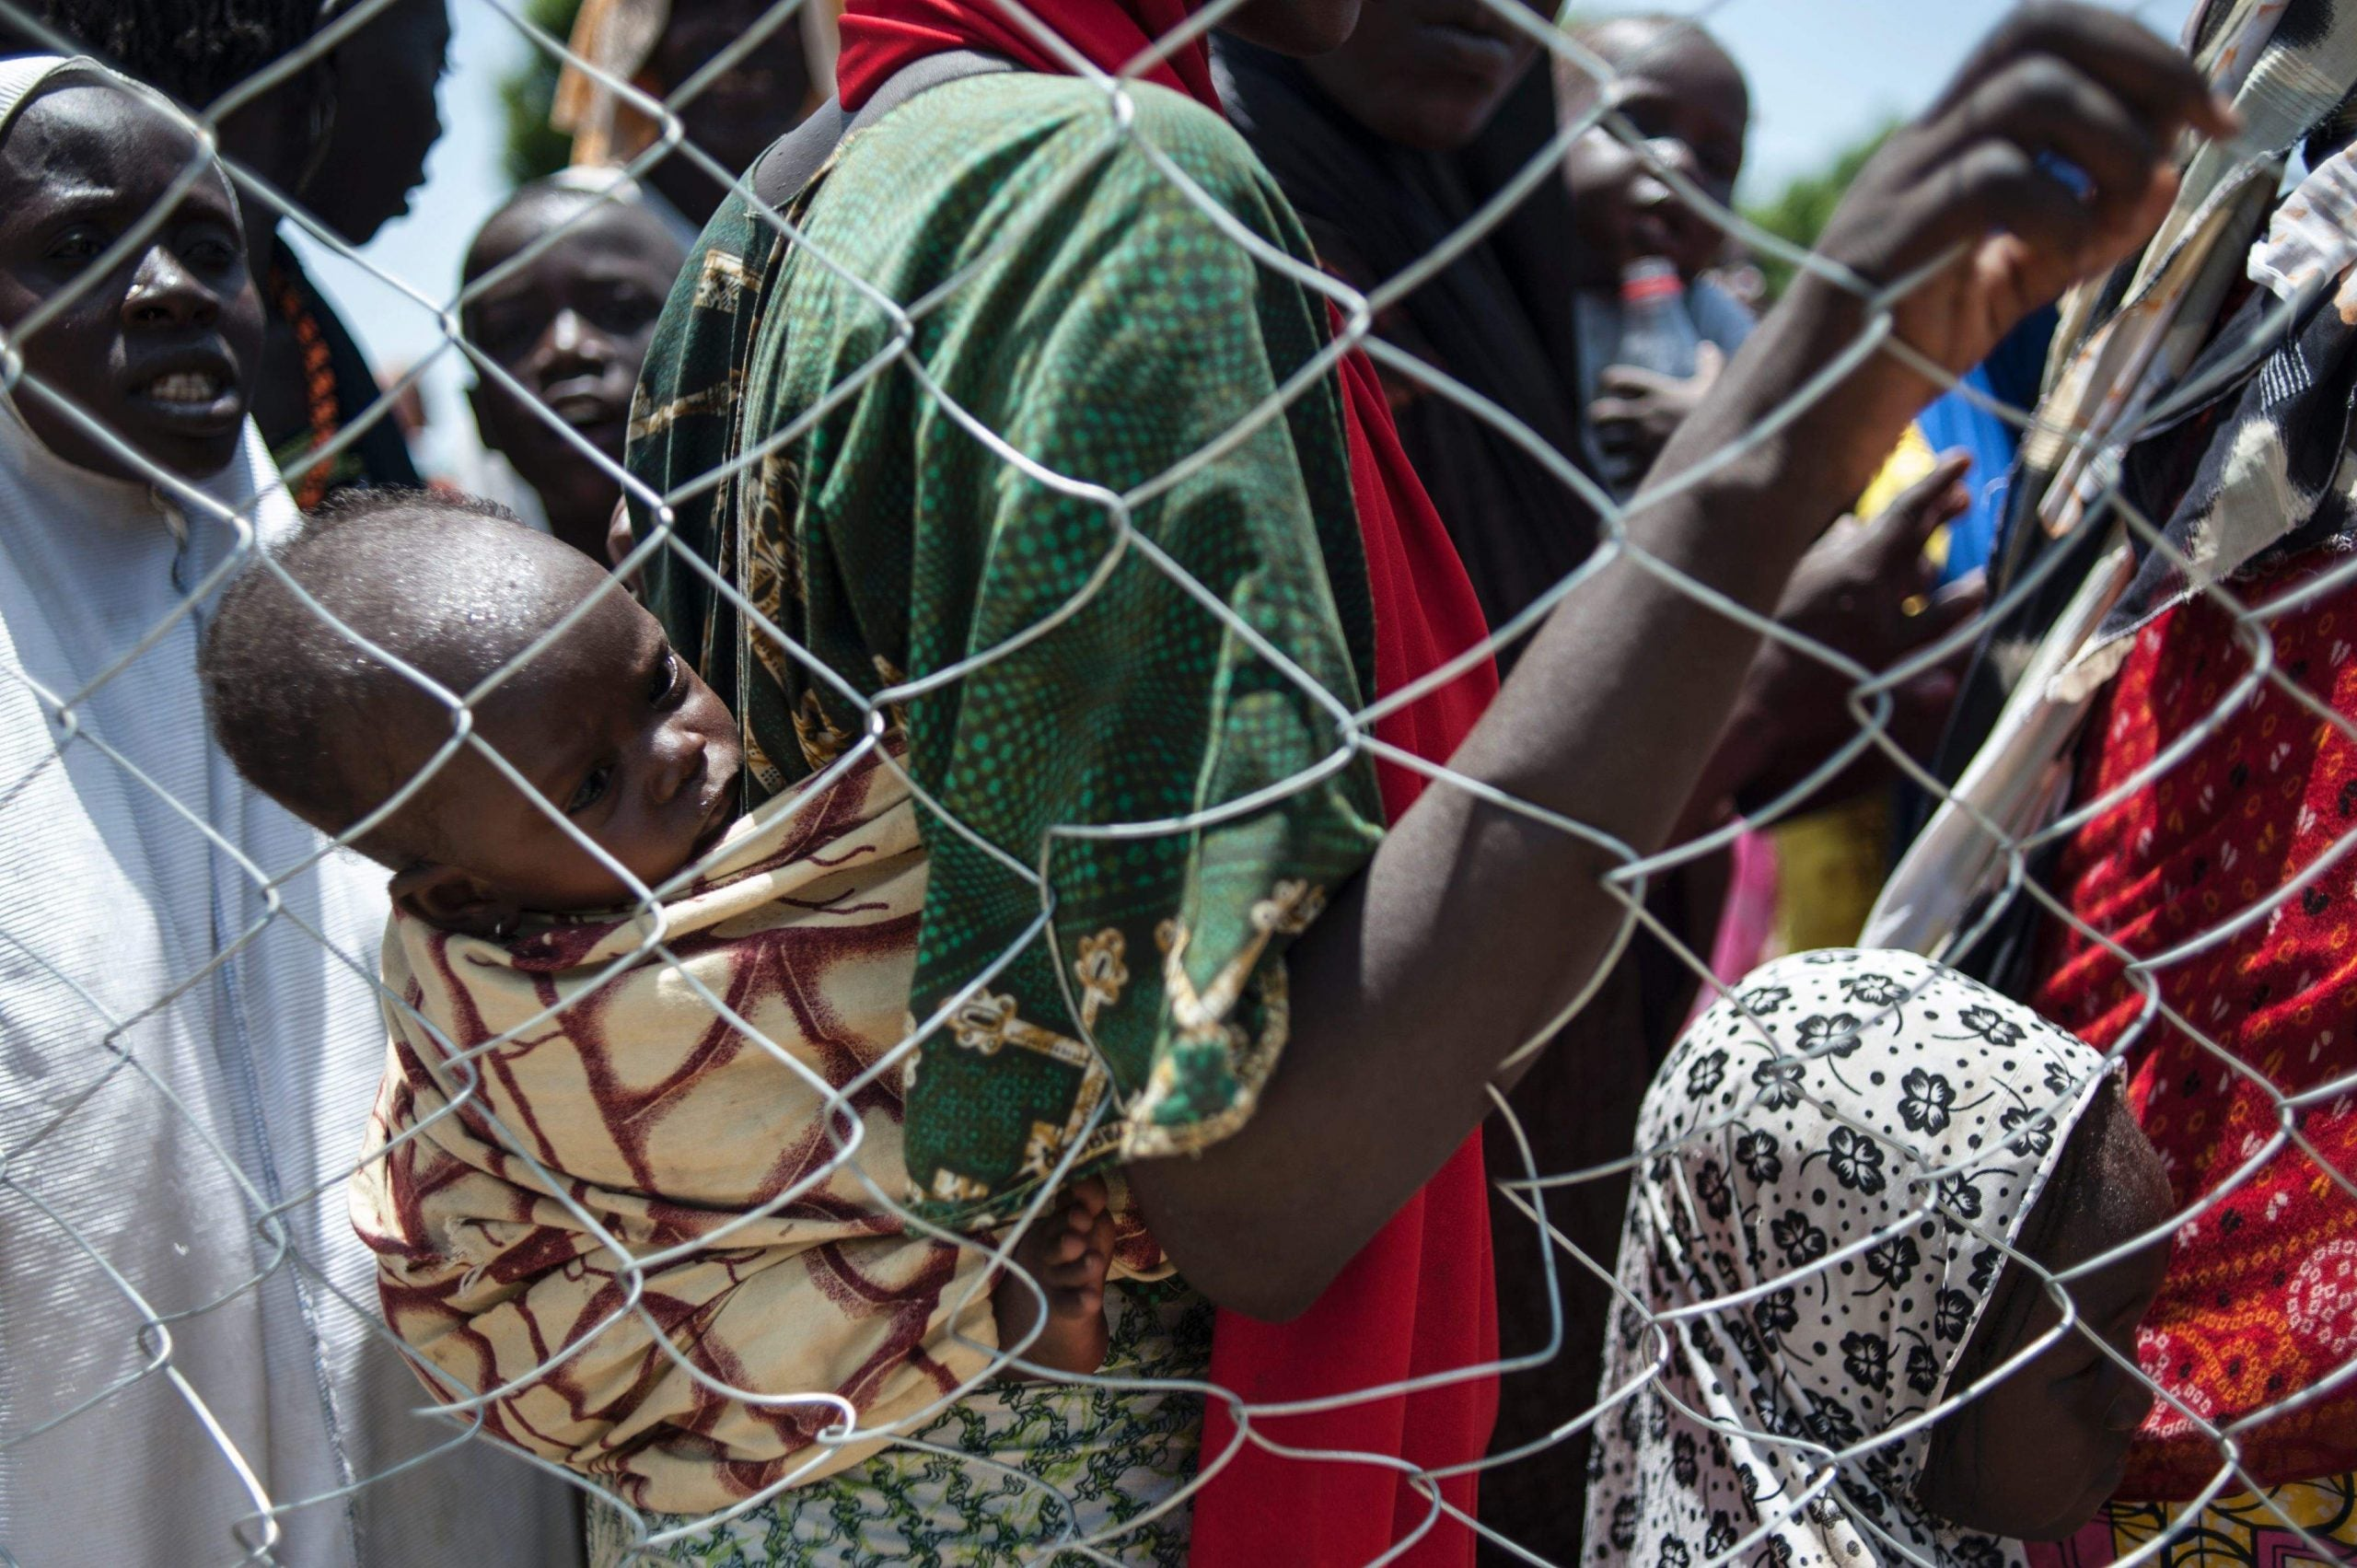 The north-south divide in Nigeria is hiding one of the world's worst humanitarian crises